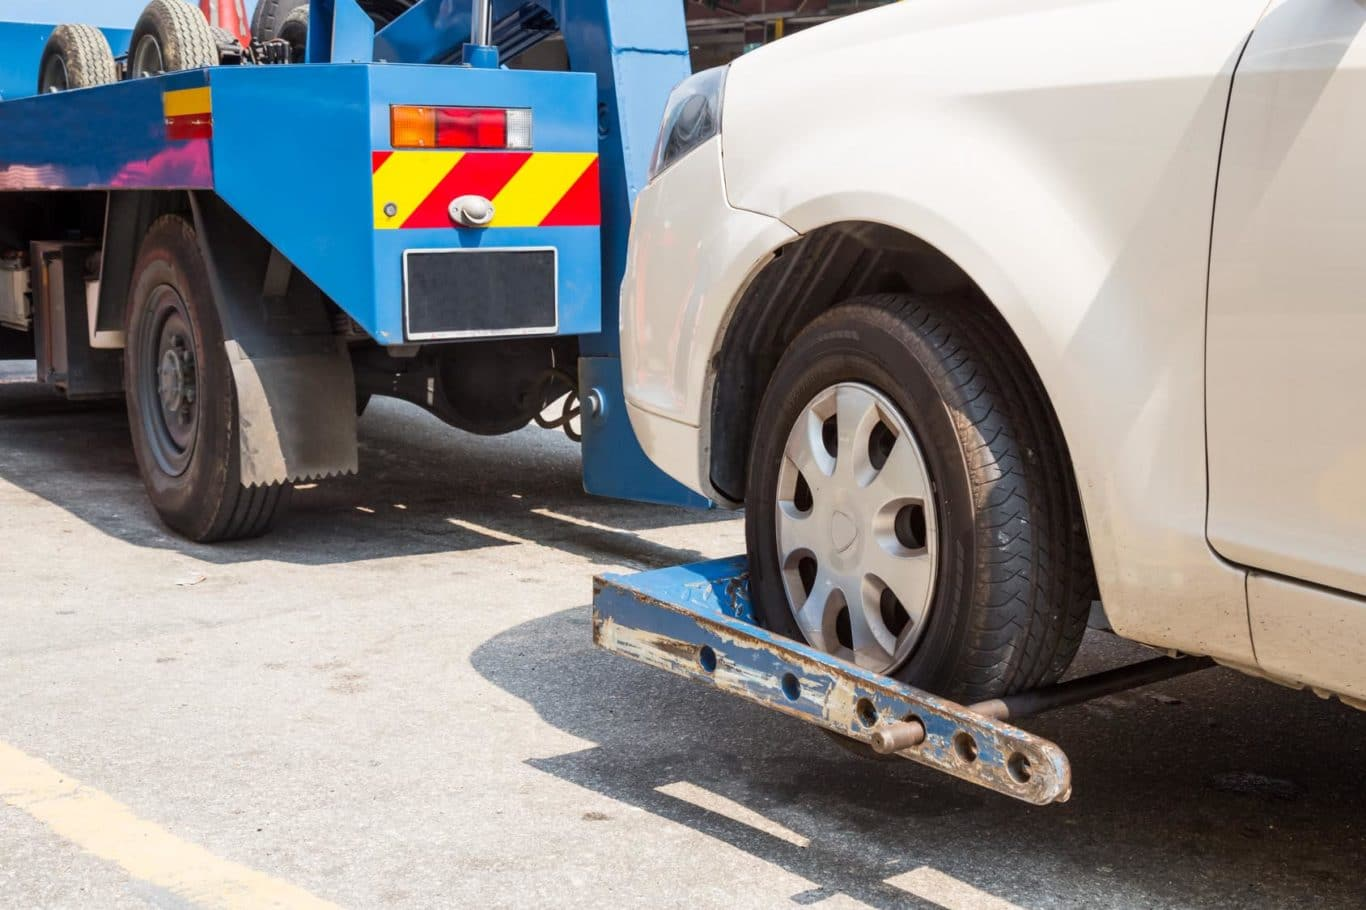 Mosney expert Roadside Assistance services